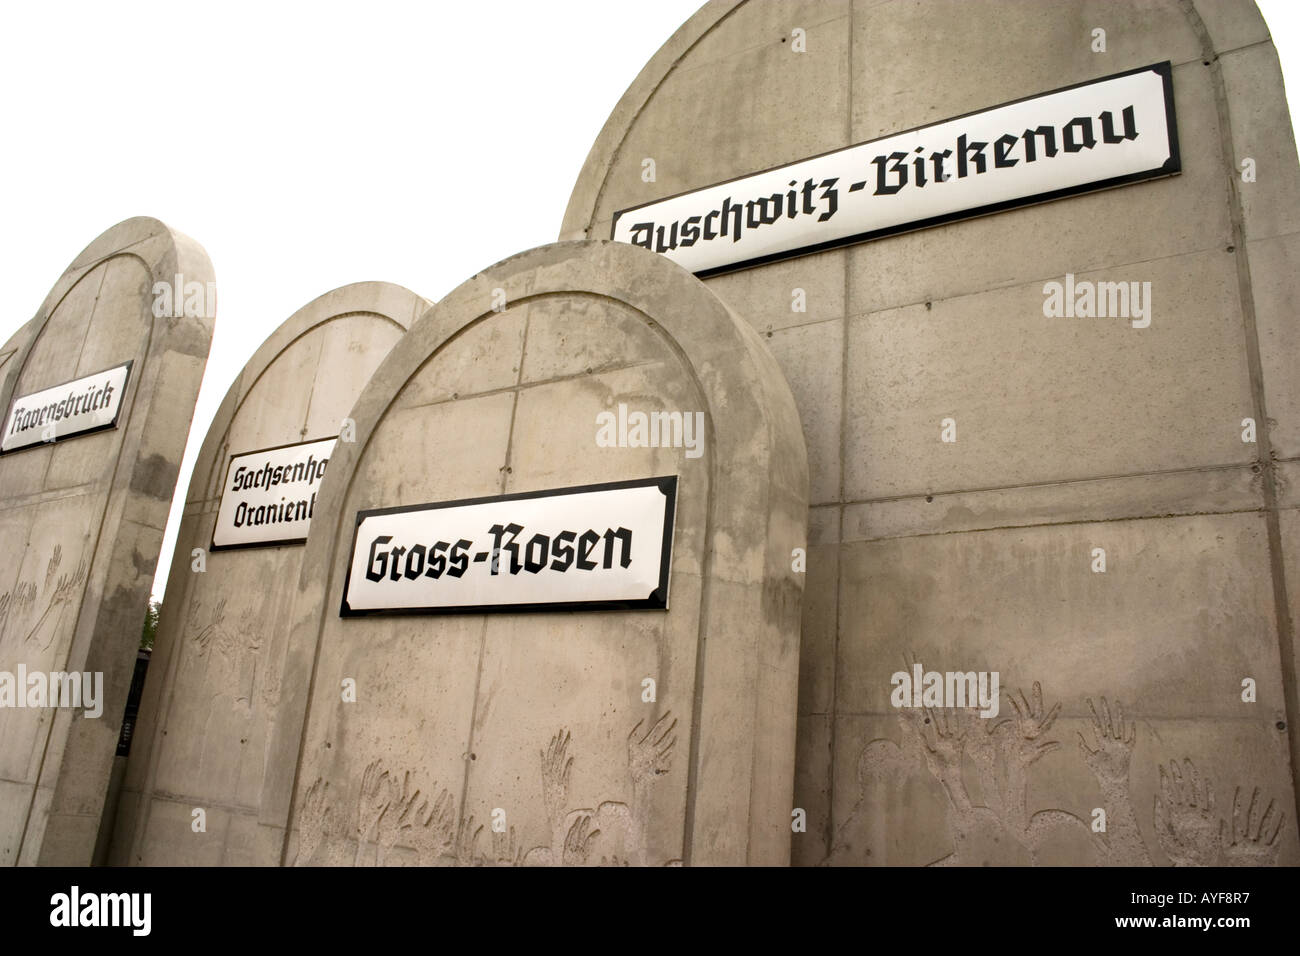 Tombstones at the Radegast Station where 200,000 Jews were transported to Auschwitz and other death camps. Lodz Central Poland - Stock Image